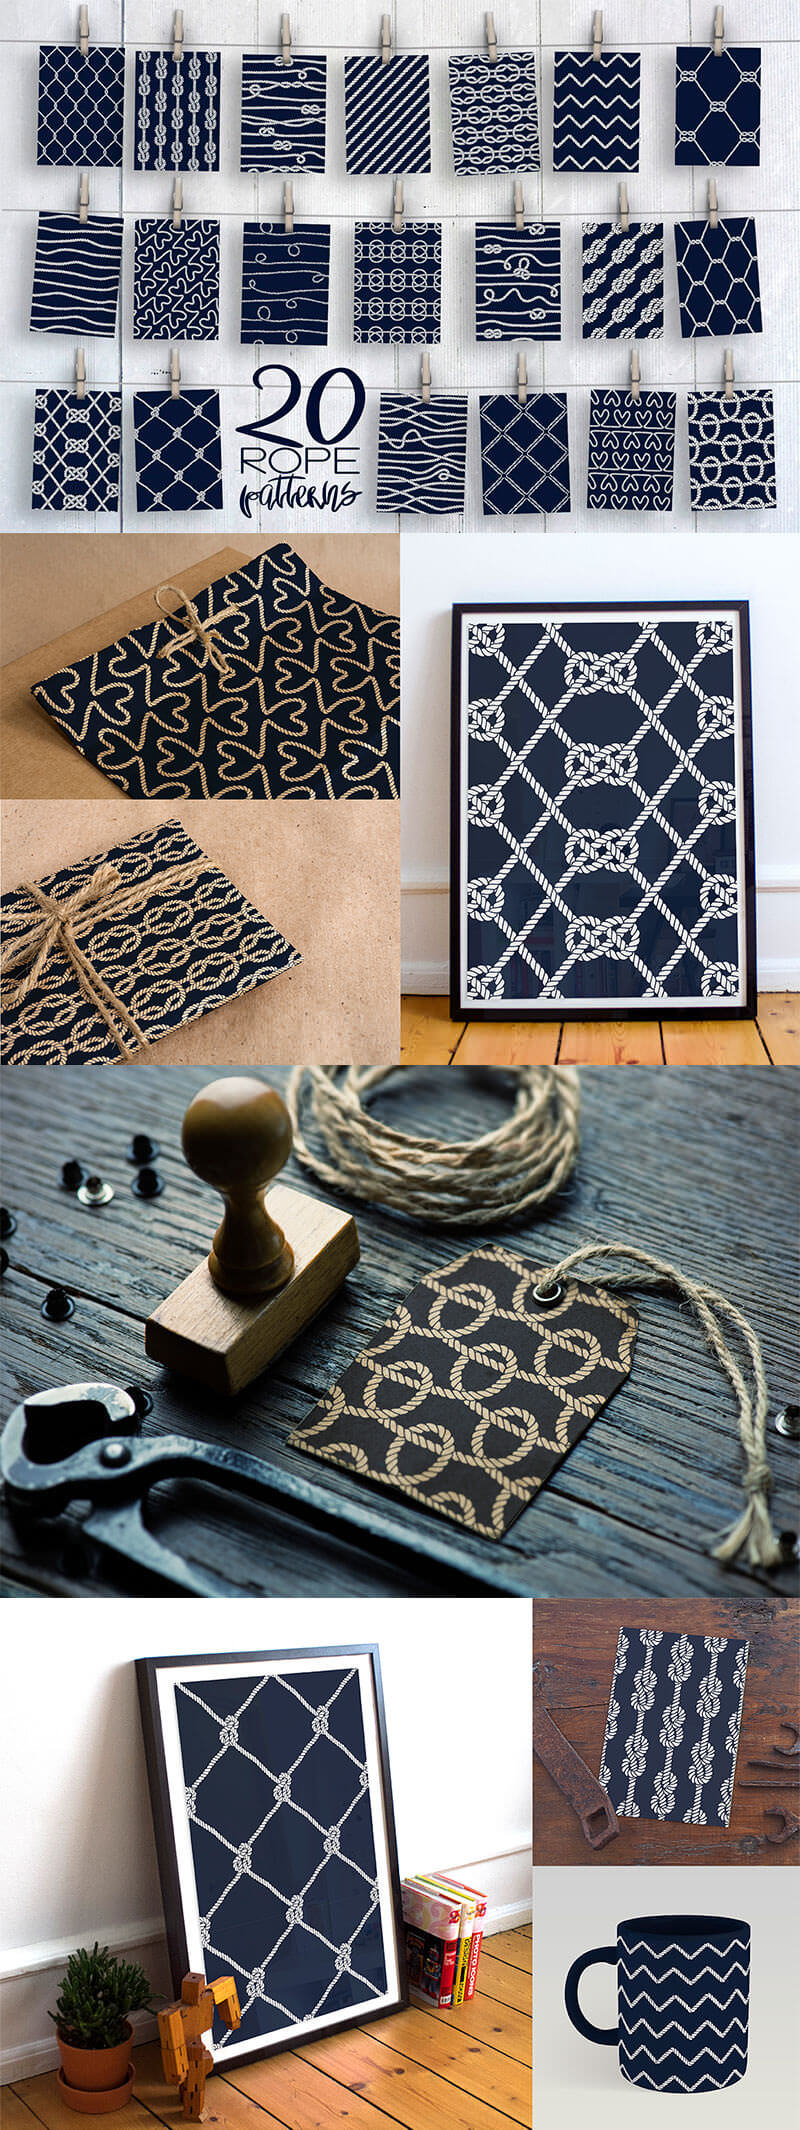 designers-textures-and-patterns-025-a